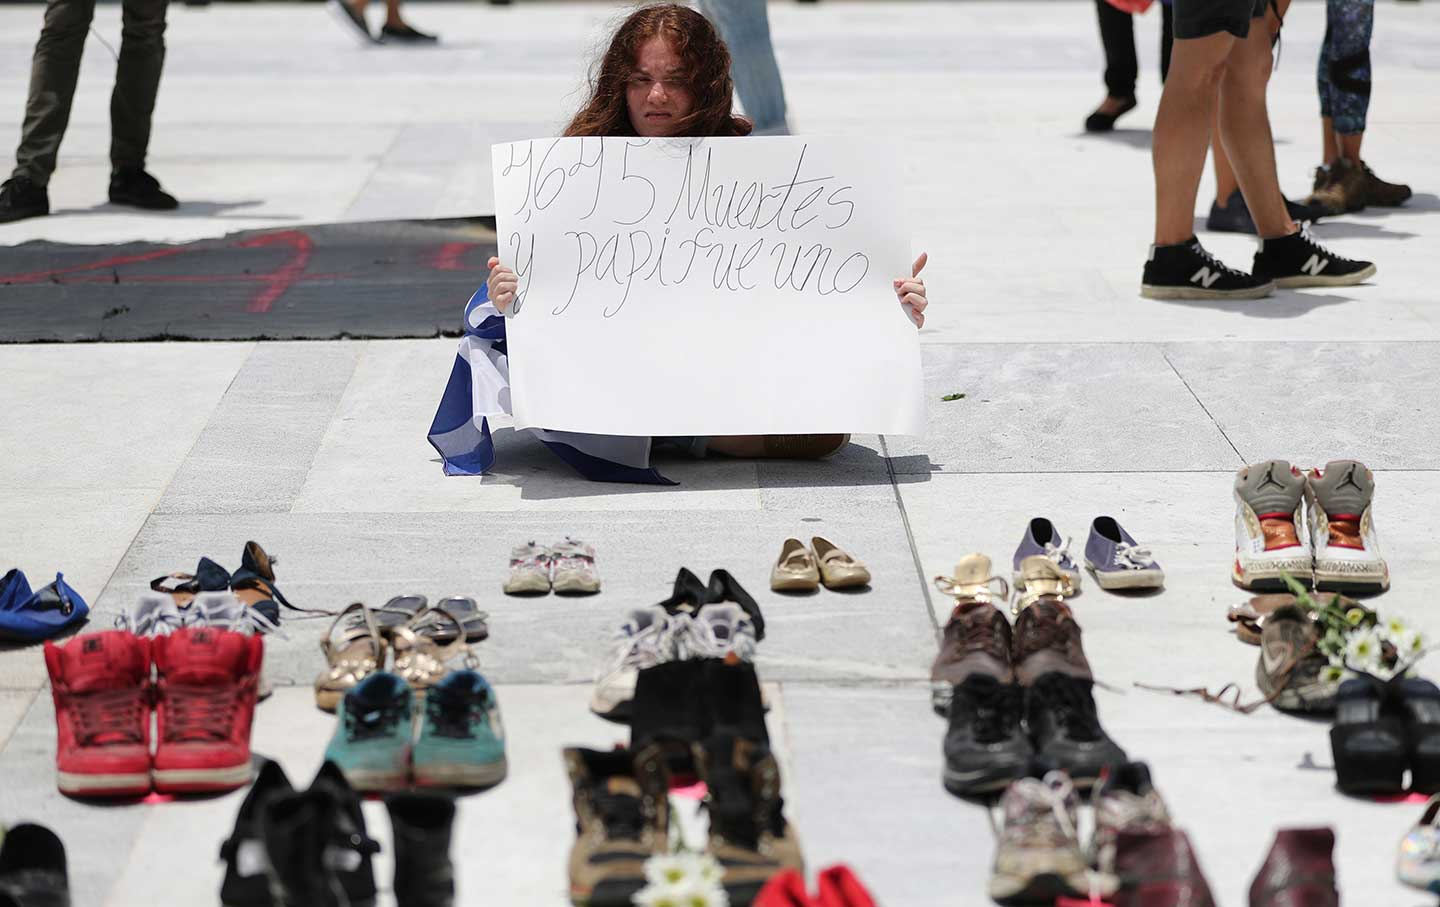 In San Juan, people leave shoes to represent the victims of Hurricane Maria.